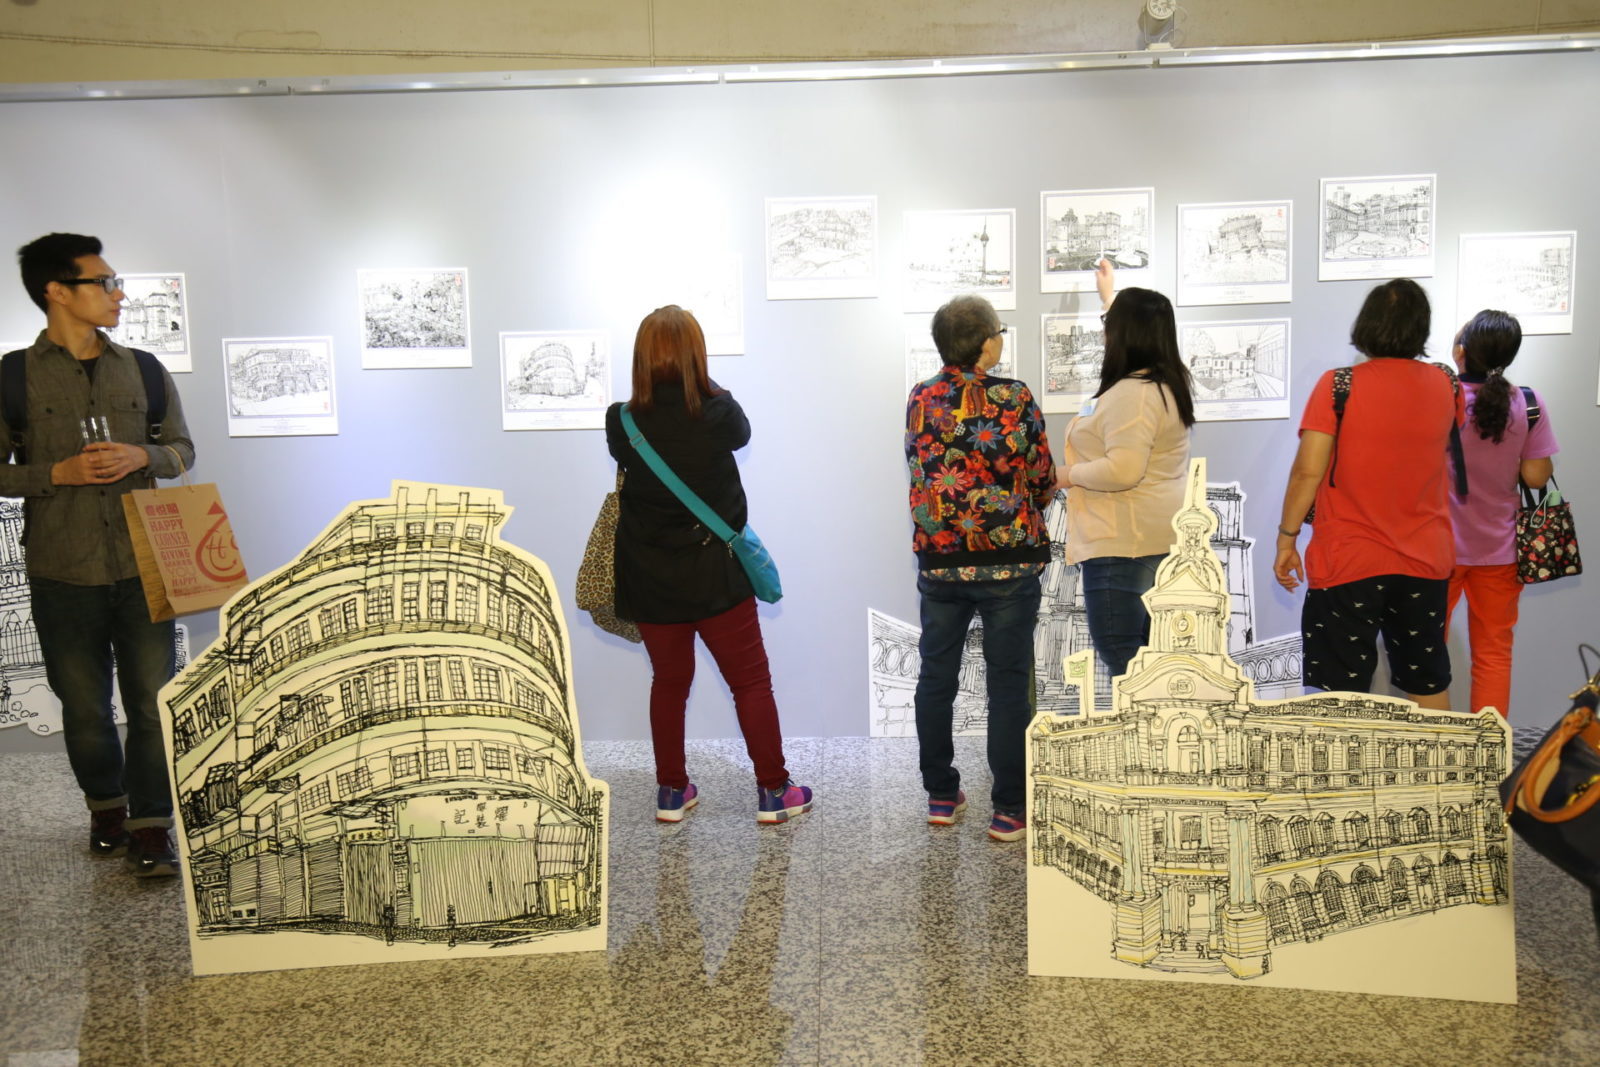 Exhibition - Arts and Handicrafts of People with Disabilities